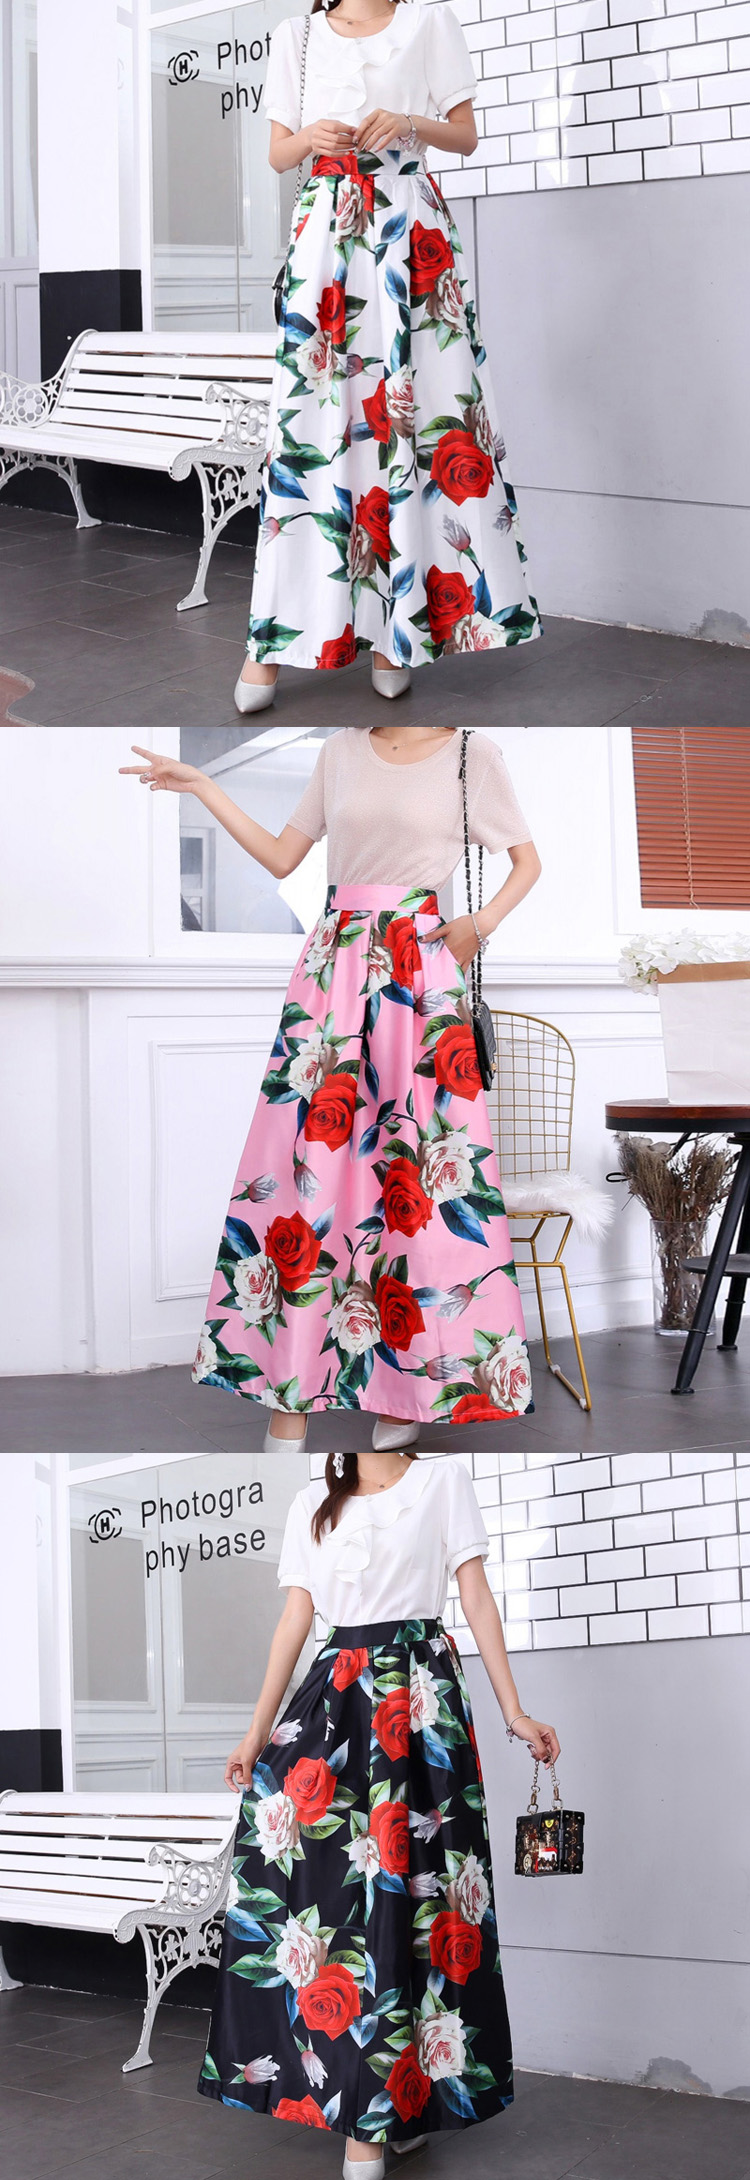 HTB1YpSeUxjaK1RjSZKzq6xVwXXa8 - Plus size Maxi Skirt Summer Fashion Vintage High Street A-line High Waist Floral Polka Dot Long Skirts for Women Jupe Longa